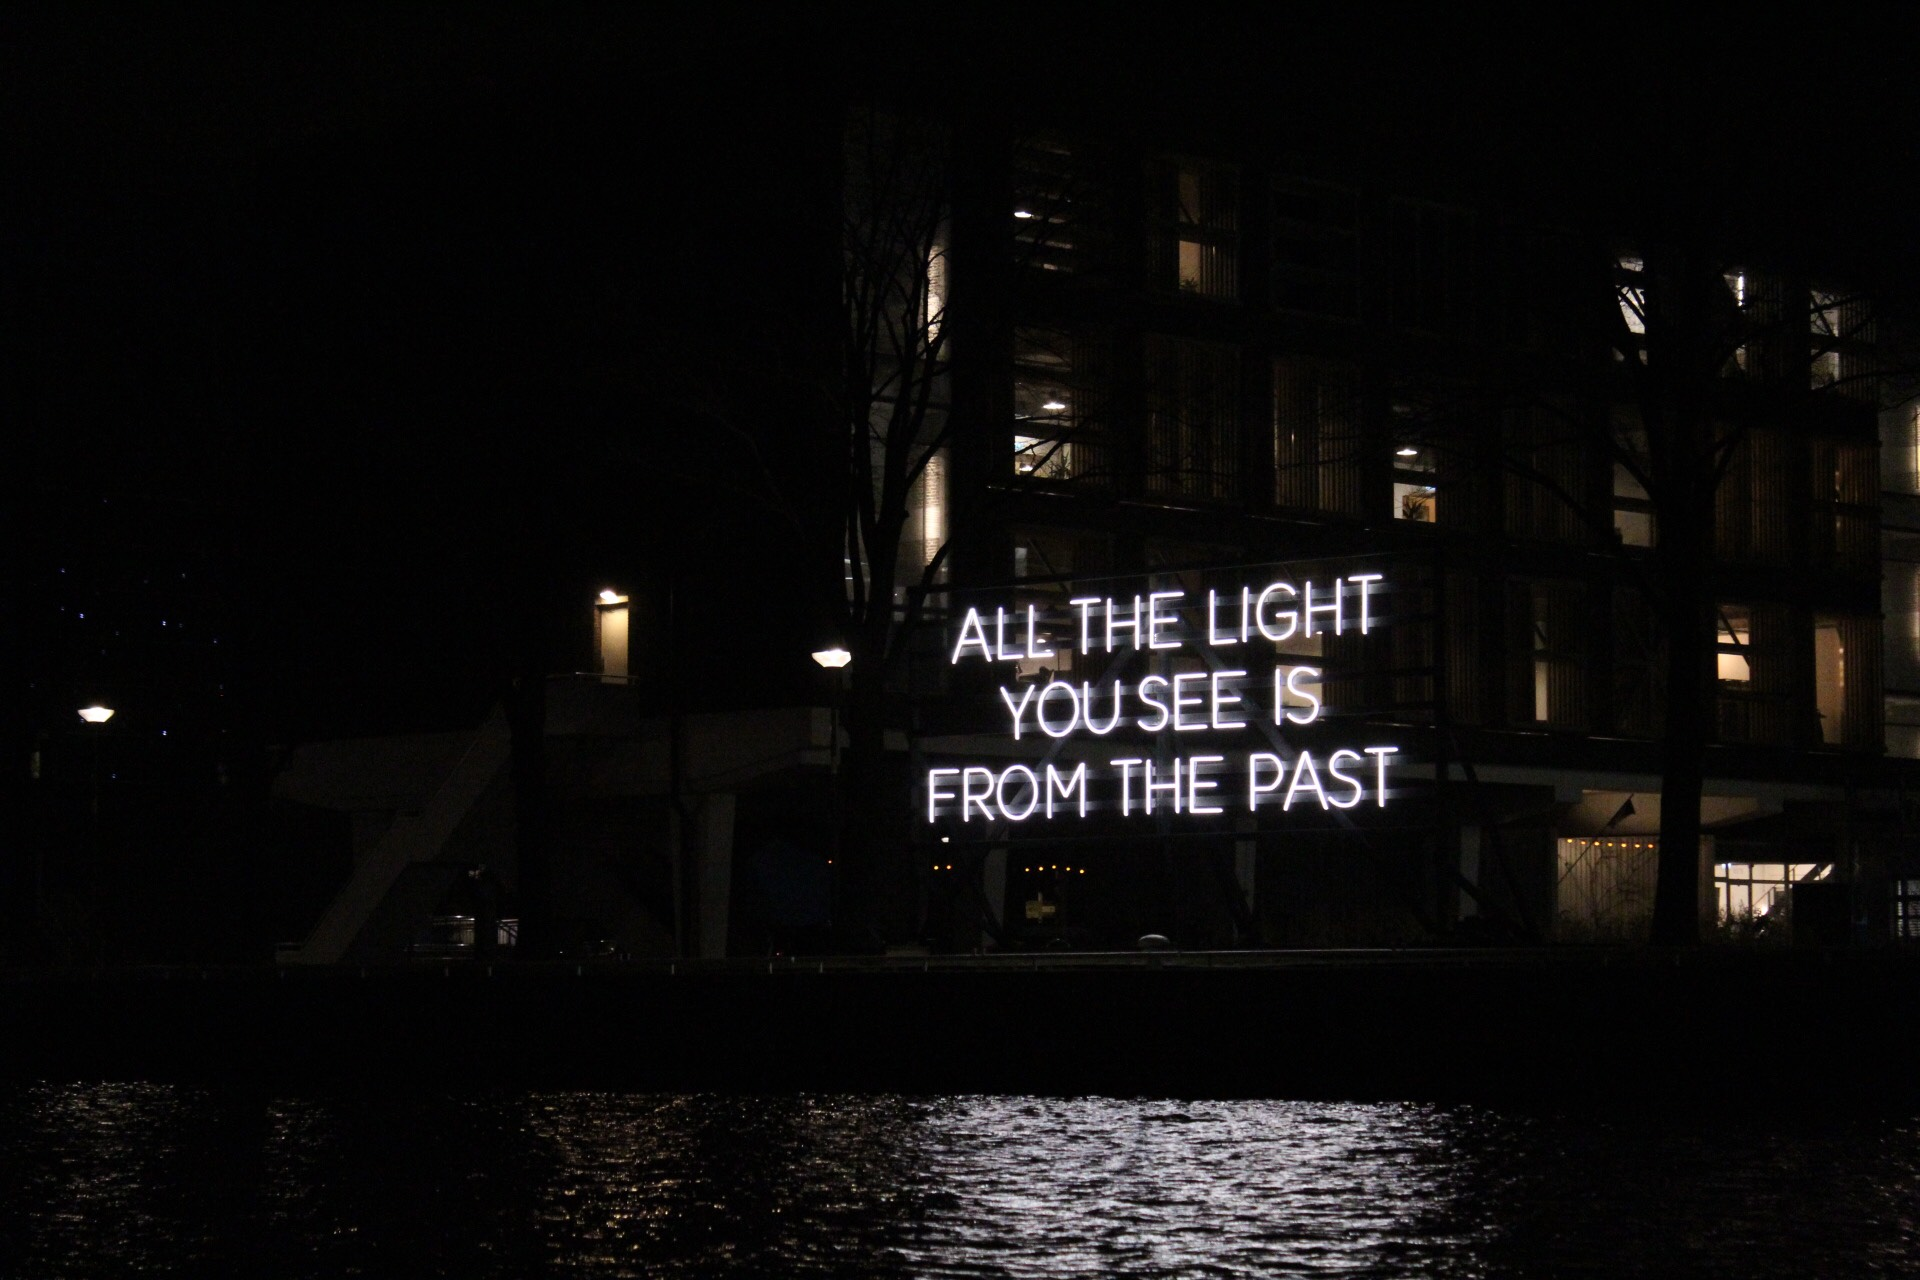 All The Light You See Is From The Past